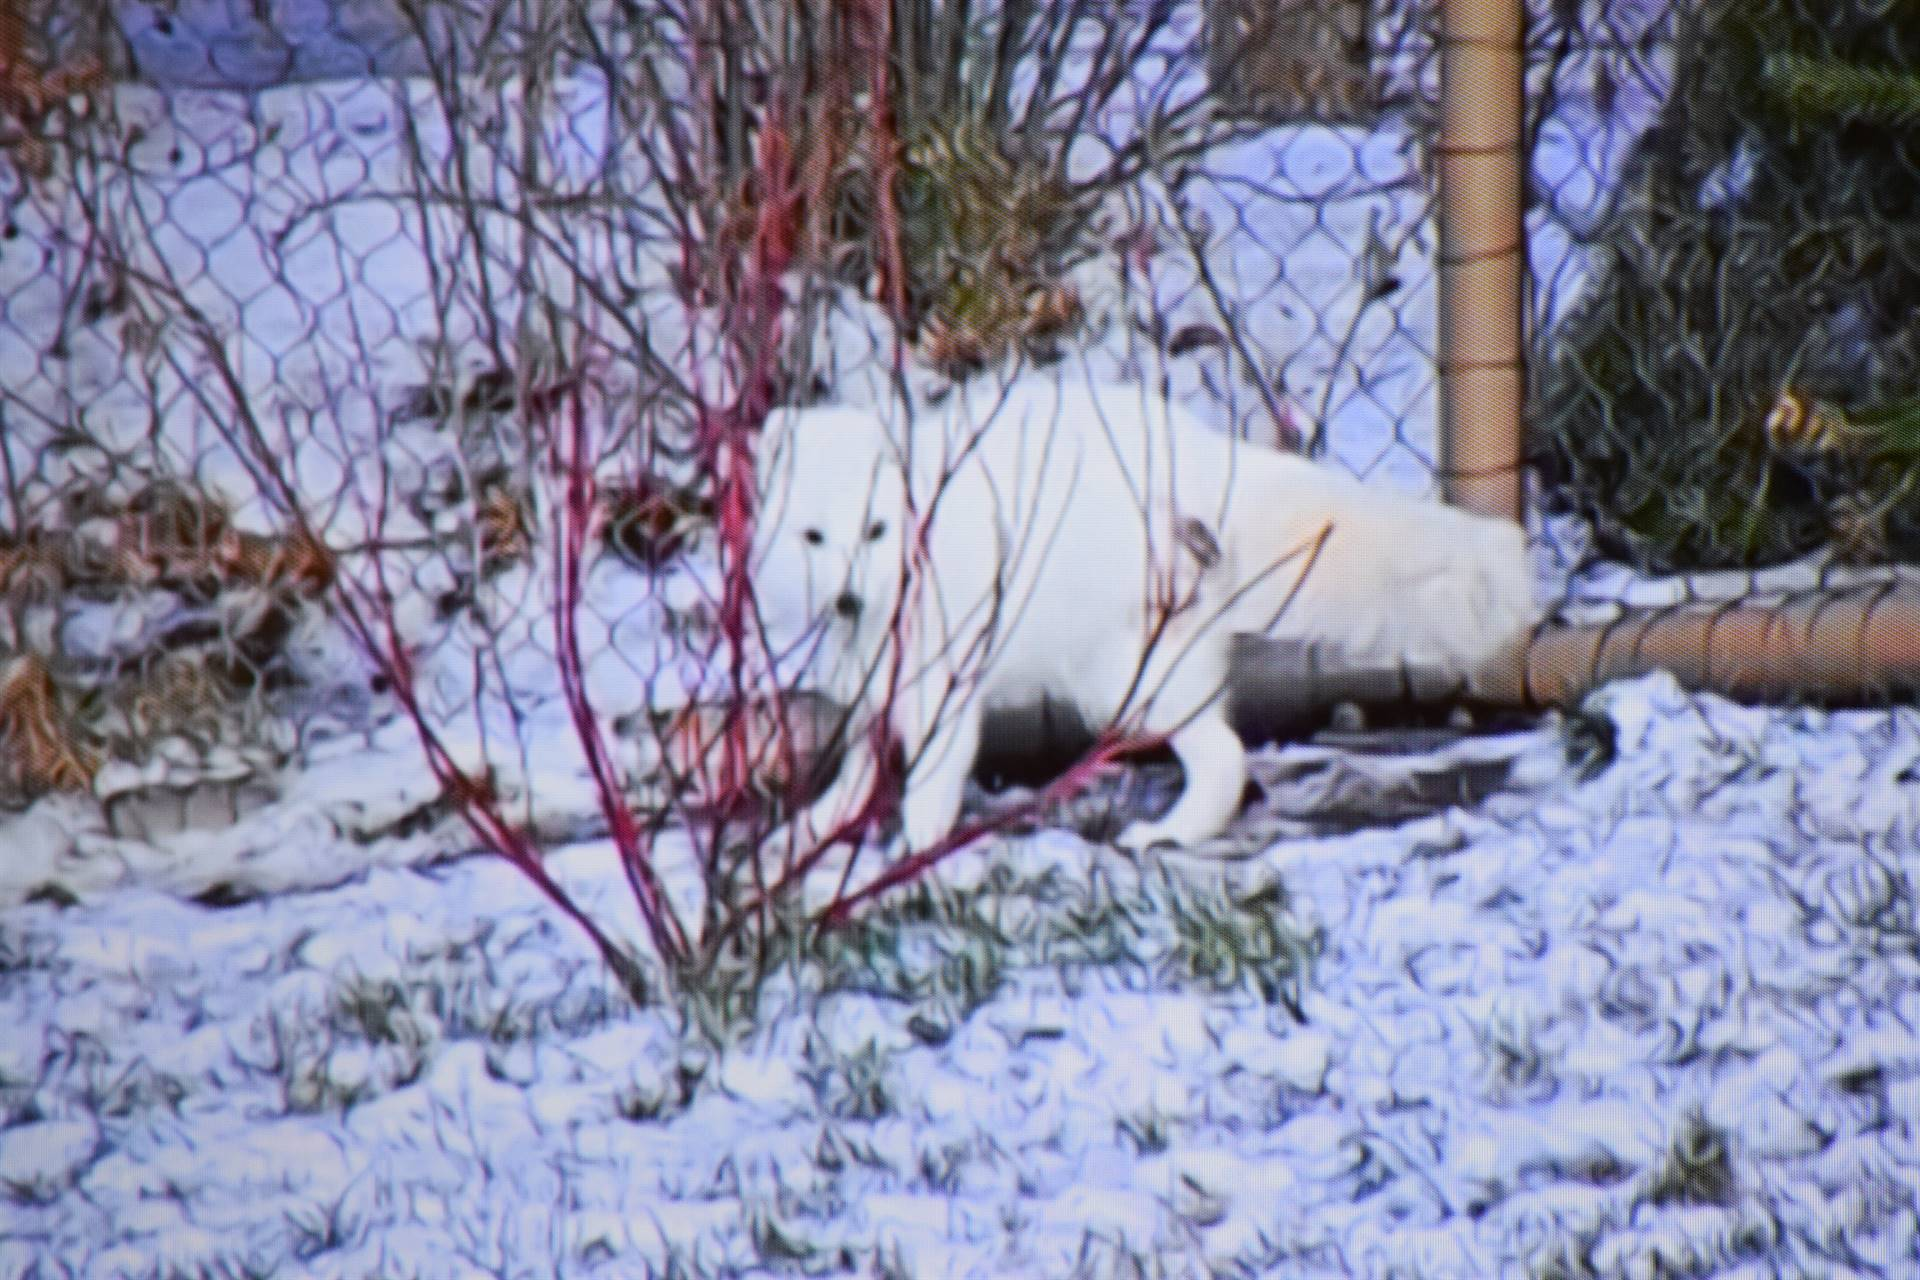 White Arctic fox between a zoo fence and a plant with leafless red branches